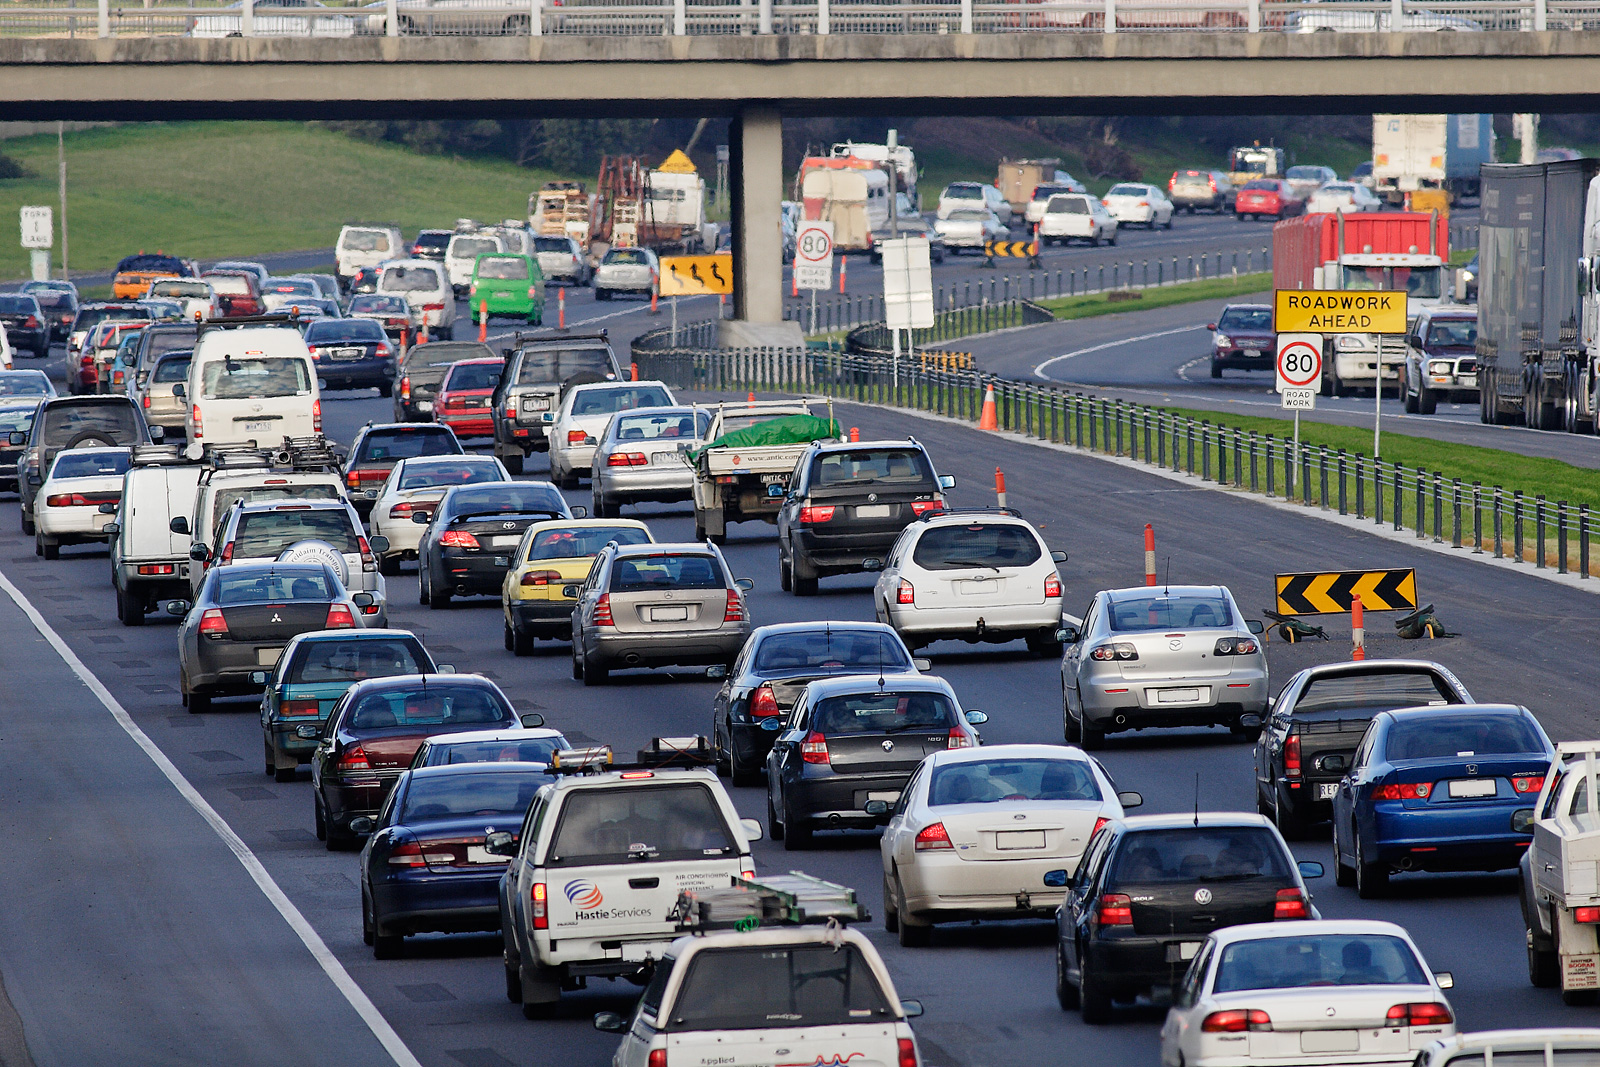 File:Peak hour traffic in melbourne.jpg - Wikipedia Traffic